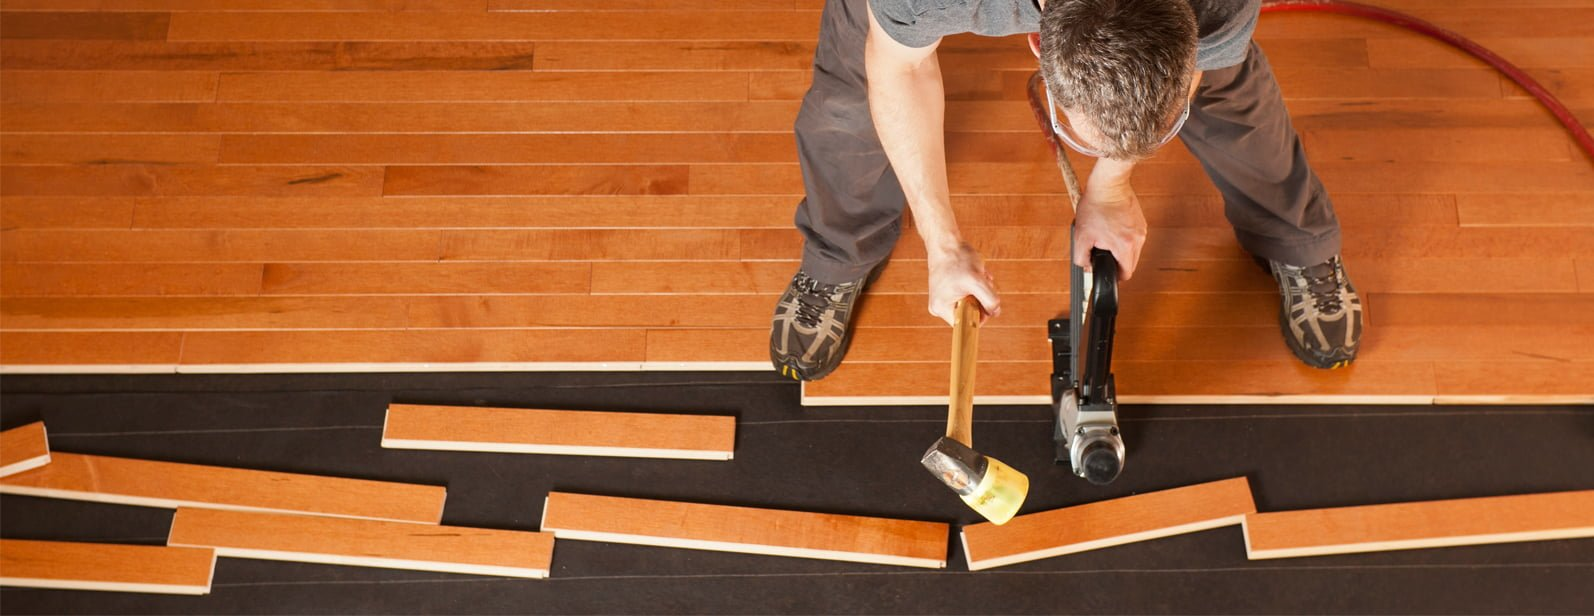 With Home Flooring Design Centre's installation, your floor's installed the right way, the first time around